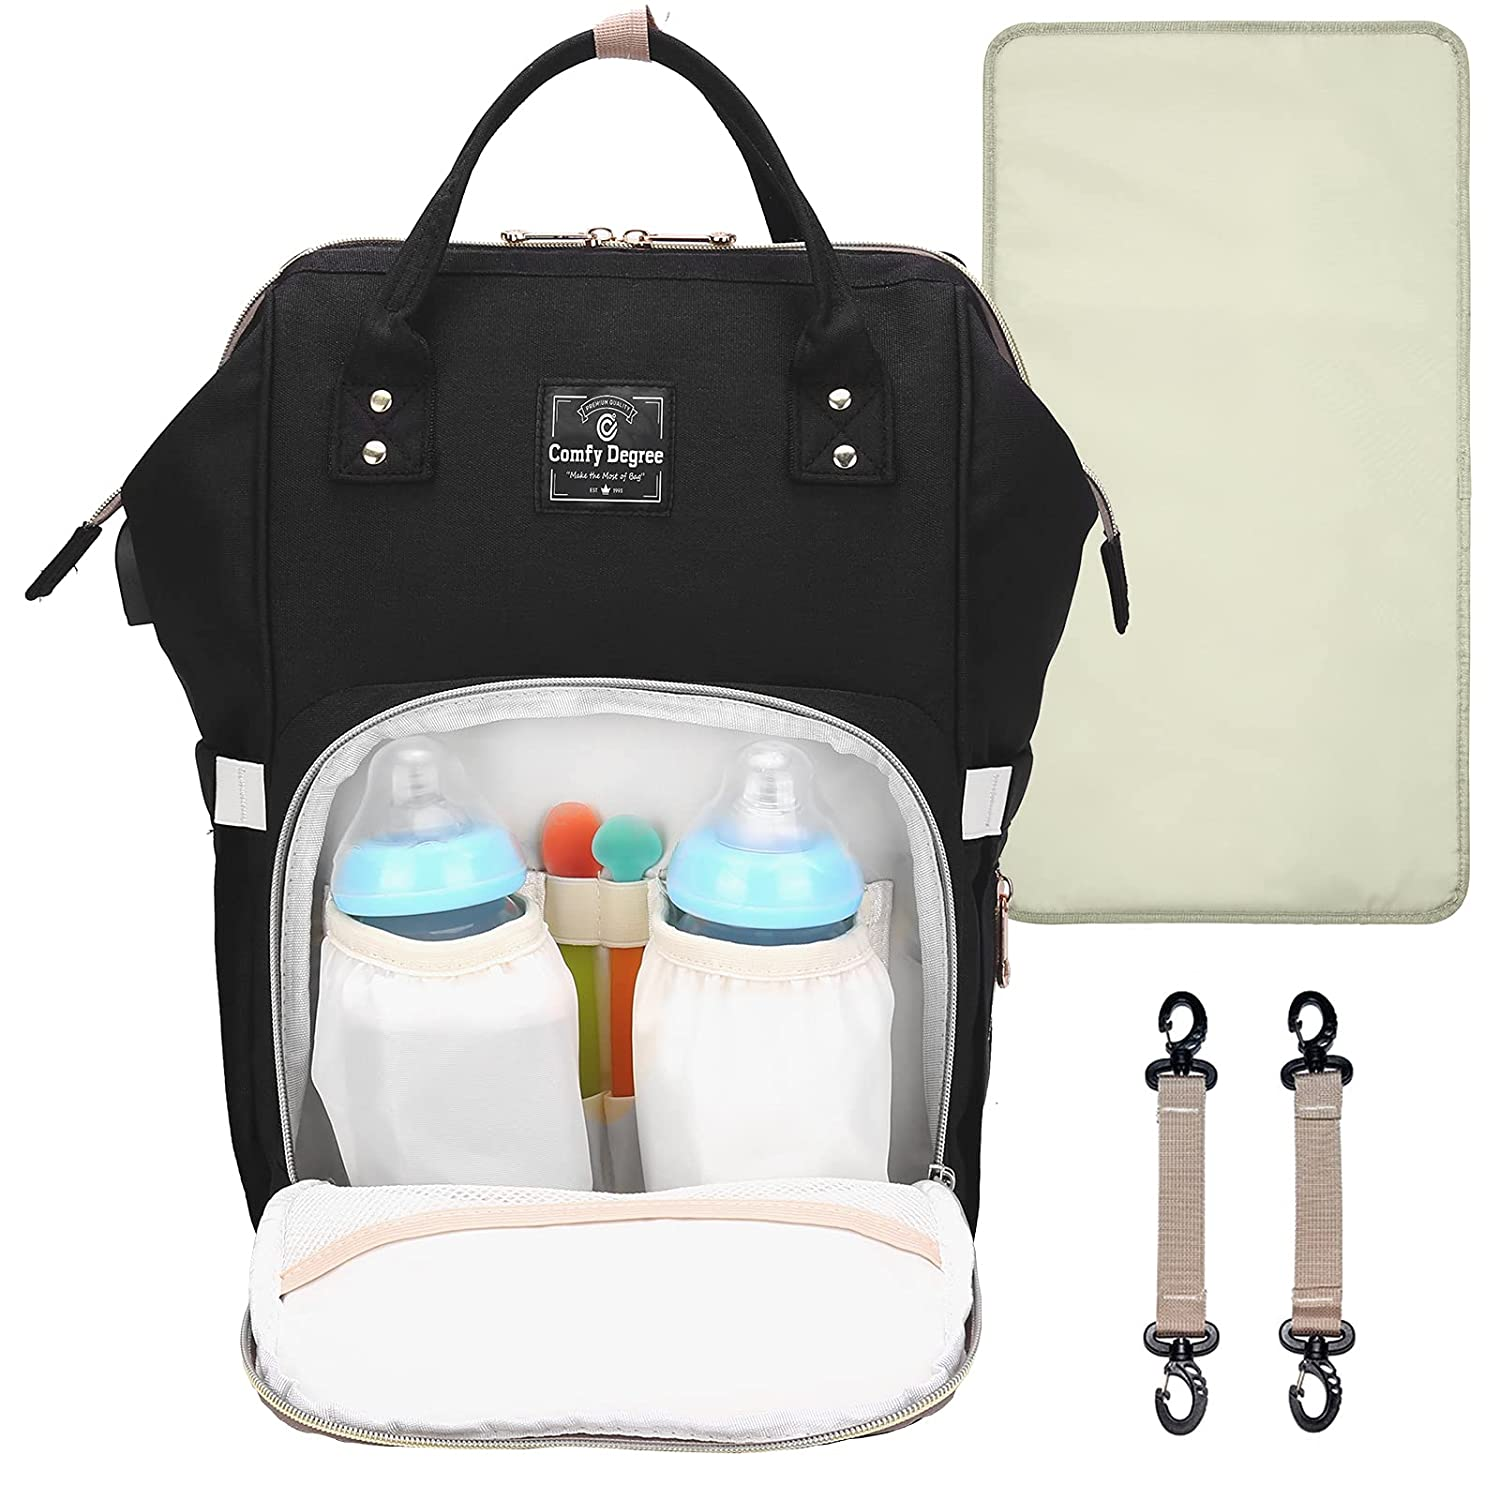 ComfyDegree Diaper Bag, Large Baby Multifunction Waterproof Fabric Travel Nappy Changing Backpack with USB Charging Port and Insulated Bottle Warmer Pockets for Mom and Dad (Black)